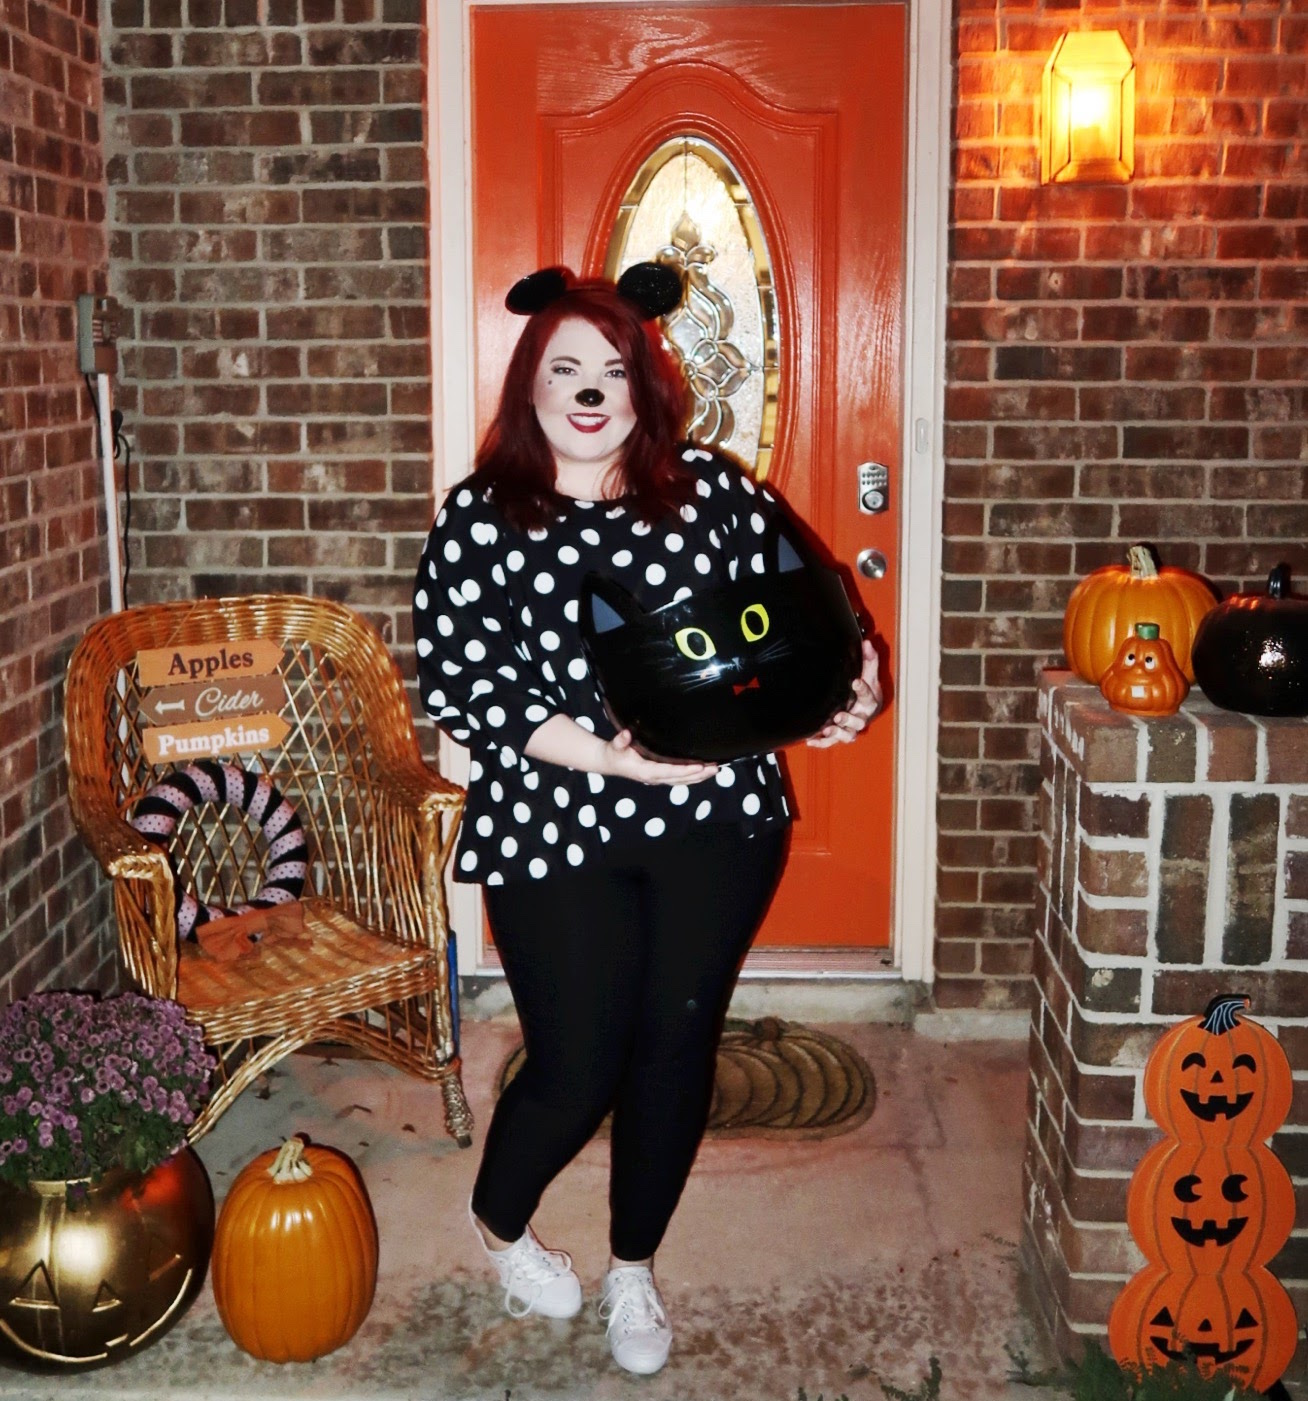 minnie-mouse-handing-out-candy